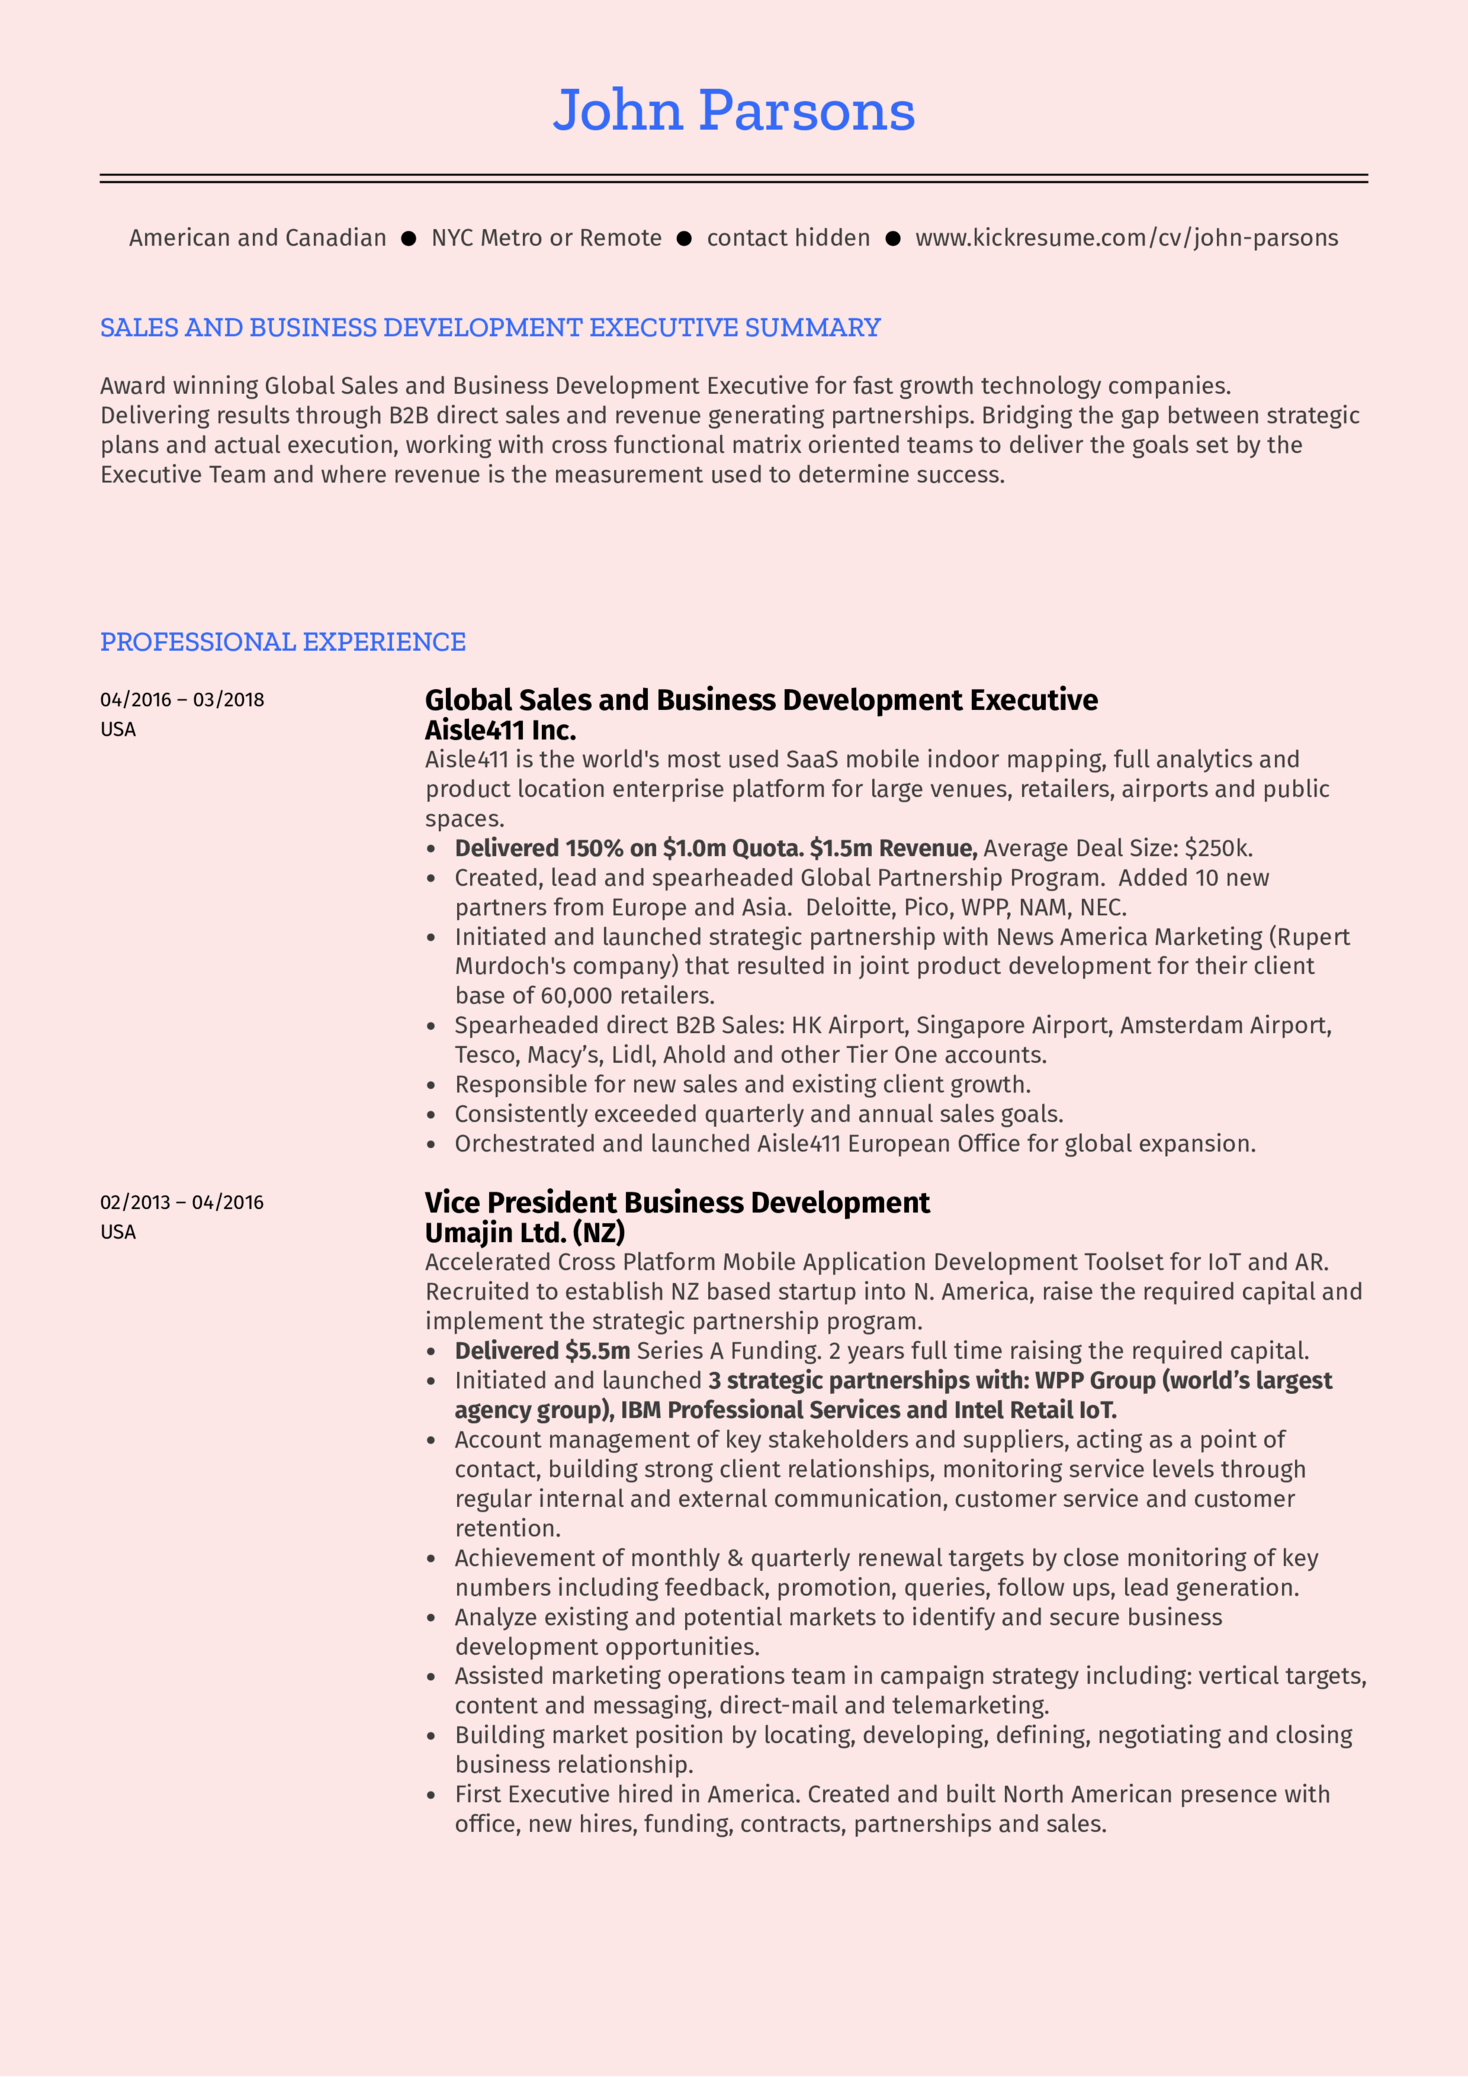 Business Development Executive Resume Sample Kickresume